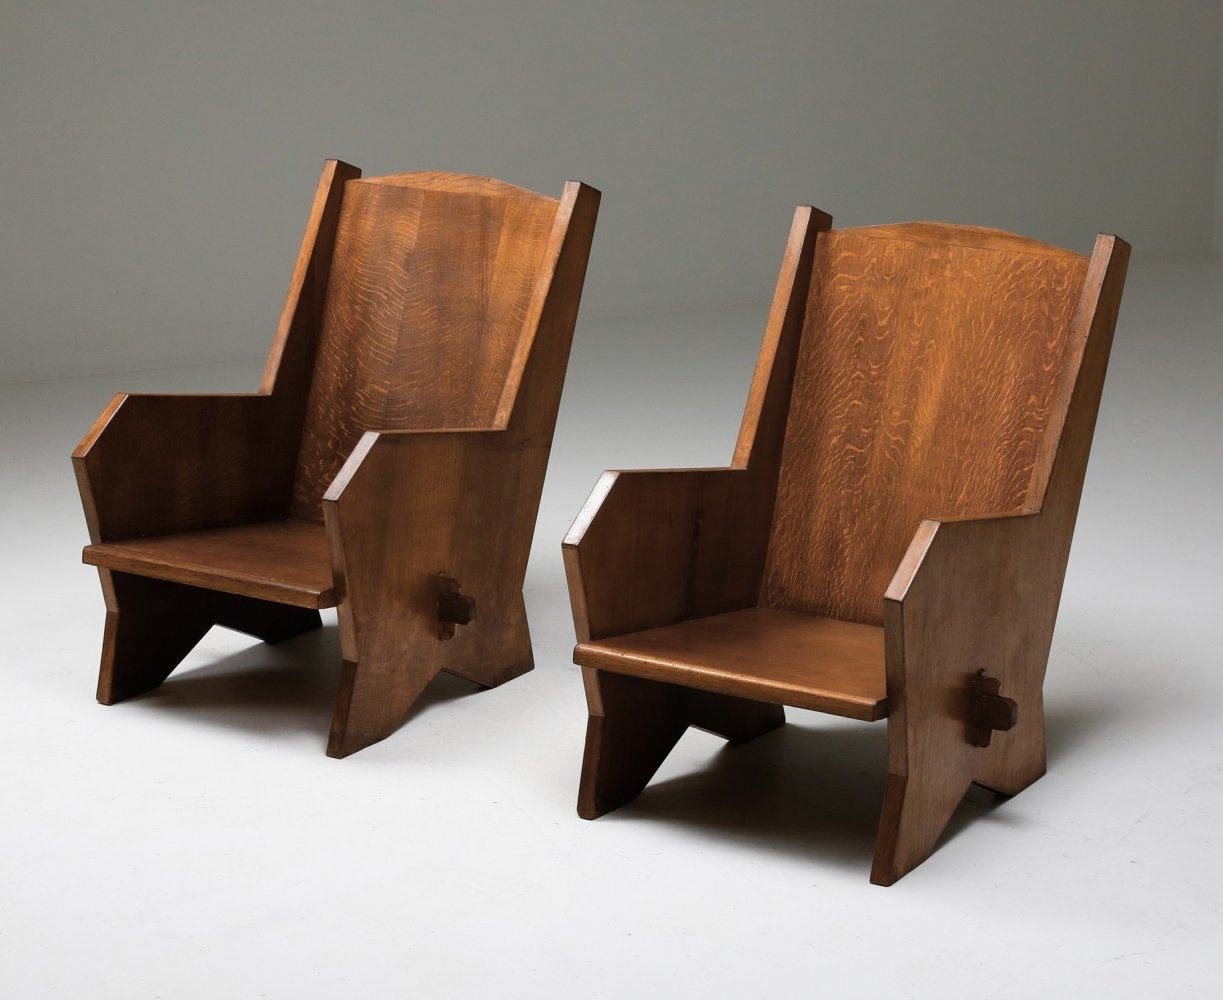 Italian Armchairs in Stained Beech, 1940